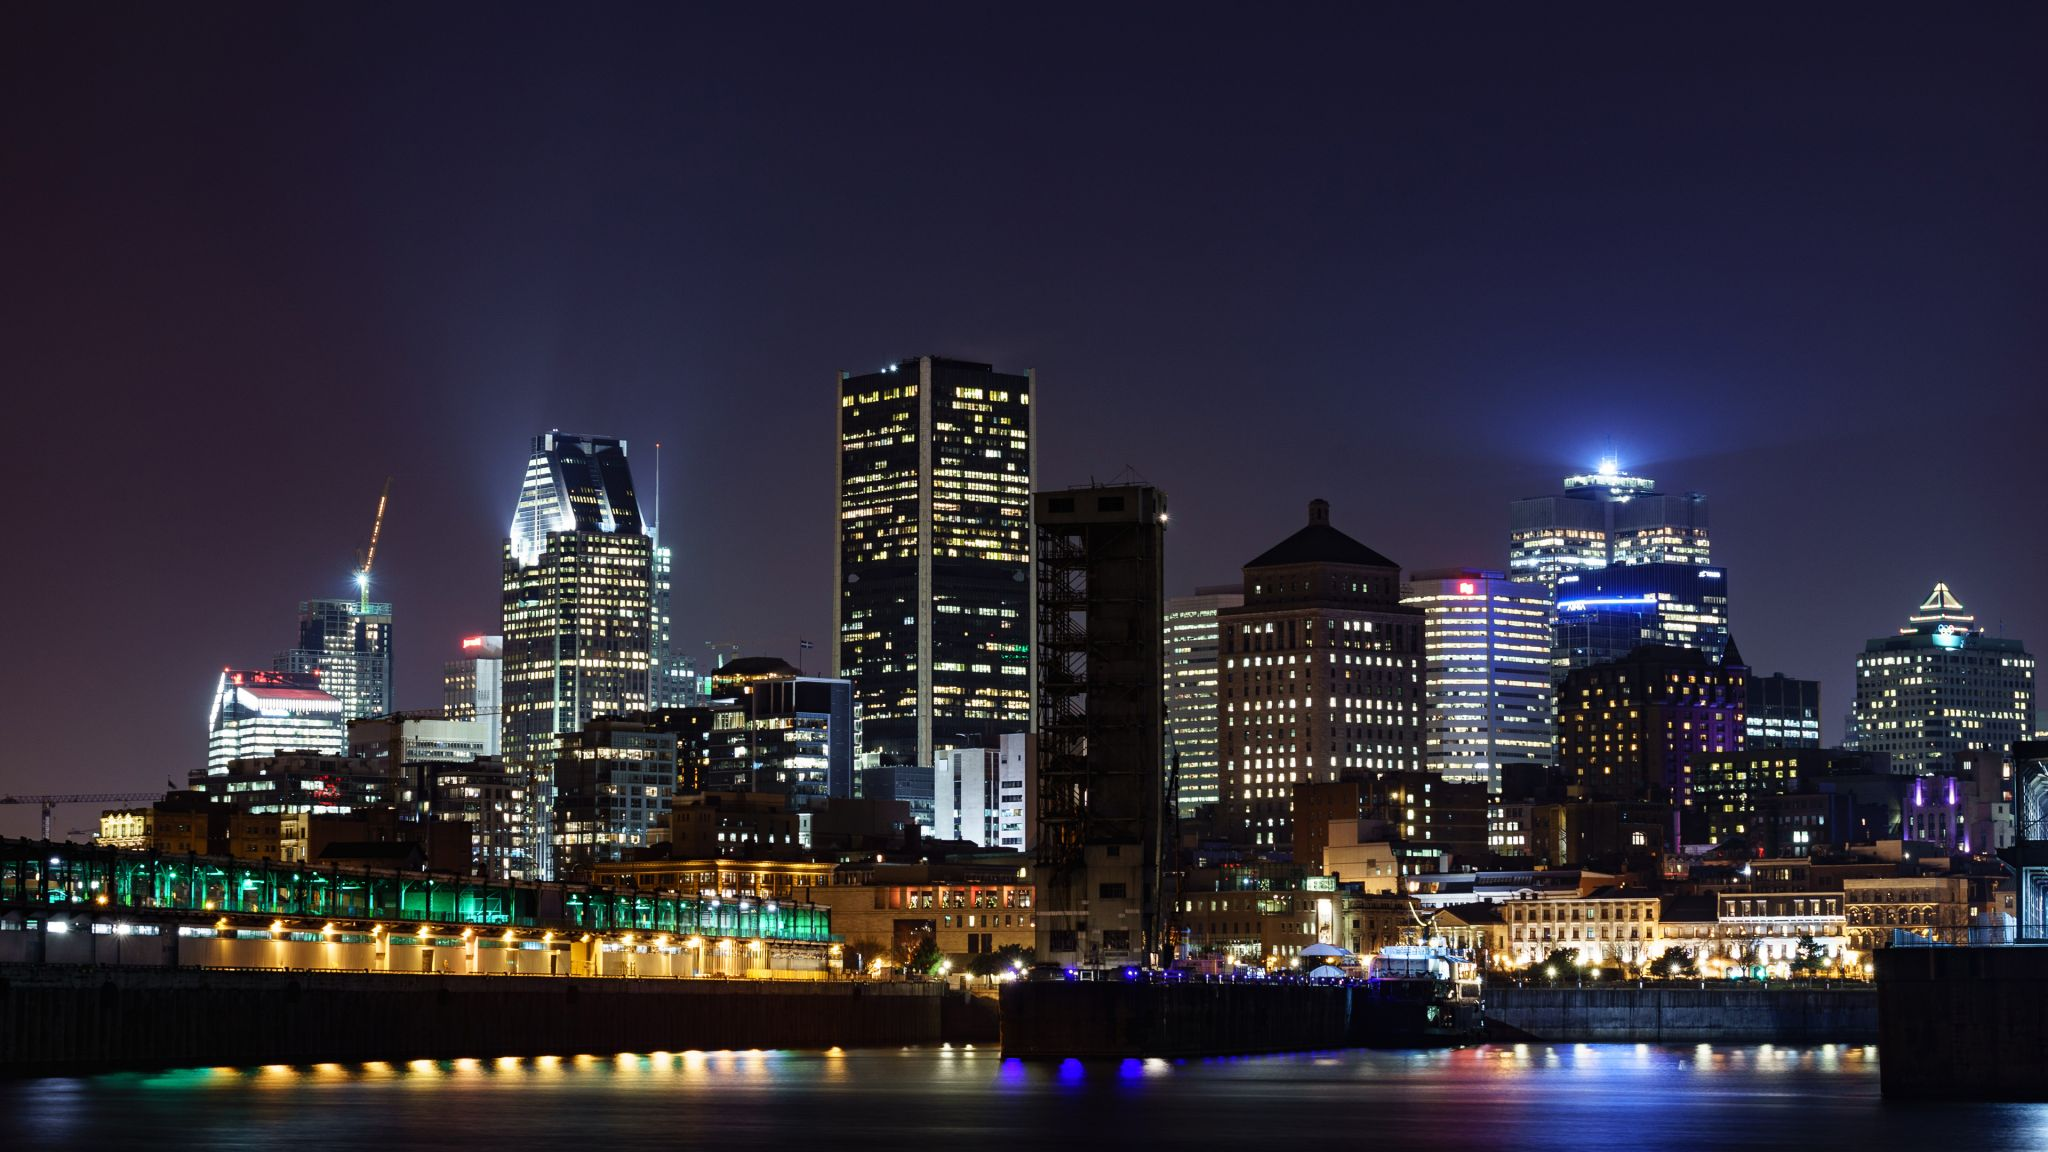 Downtown Montreal at night, Canada